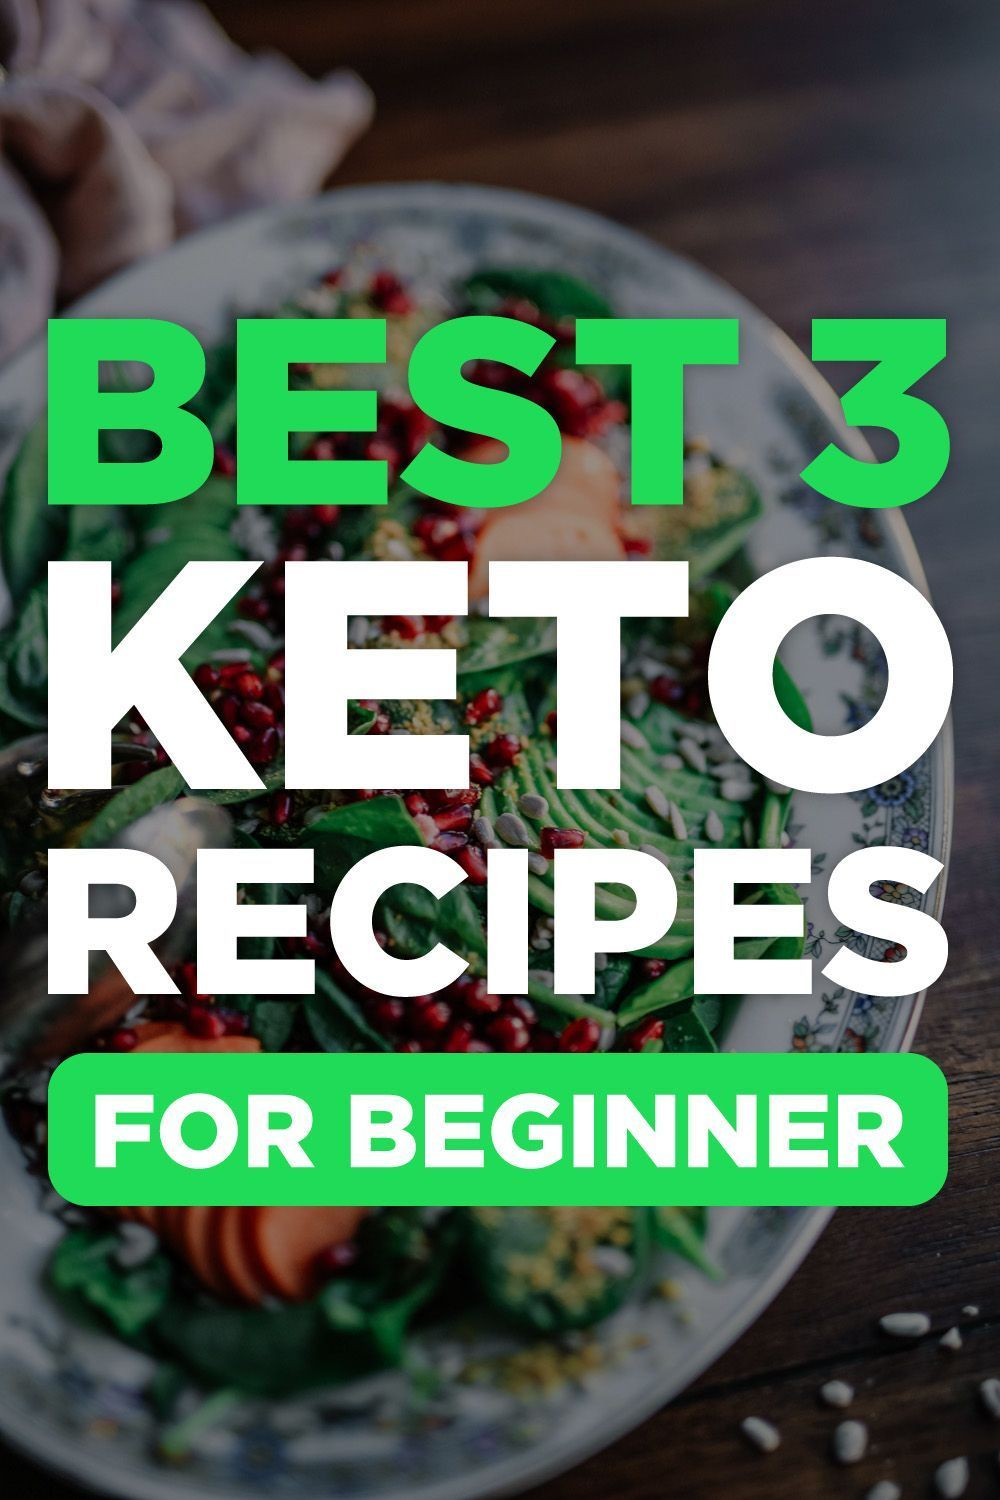 keto recipe chicken, makers diet recipes, cauliflower recipes healthy low carb, diets plans to lose weight fast, keto moms, no low carb, weight lose meals, gerd diet recipes, what not to eat on keto diet, doterra for weight loss, month diet, food plan for weight loss, dieting foods, best low carb food, a low carb diet plan, keto diet 2 weeks, low fat diet for pancreatitis, ms diet recipes, protien diet, weight loss nutrition plan, i need to lose weight fast, #protiendiet keto